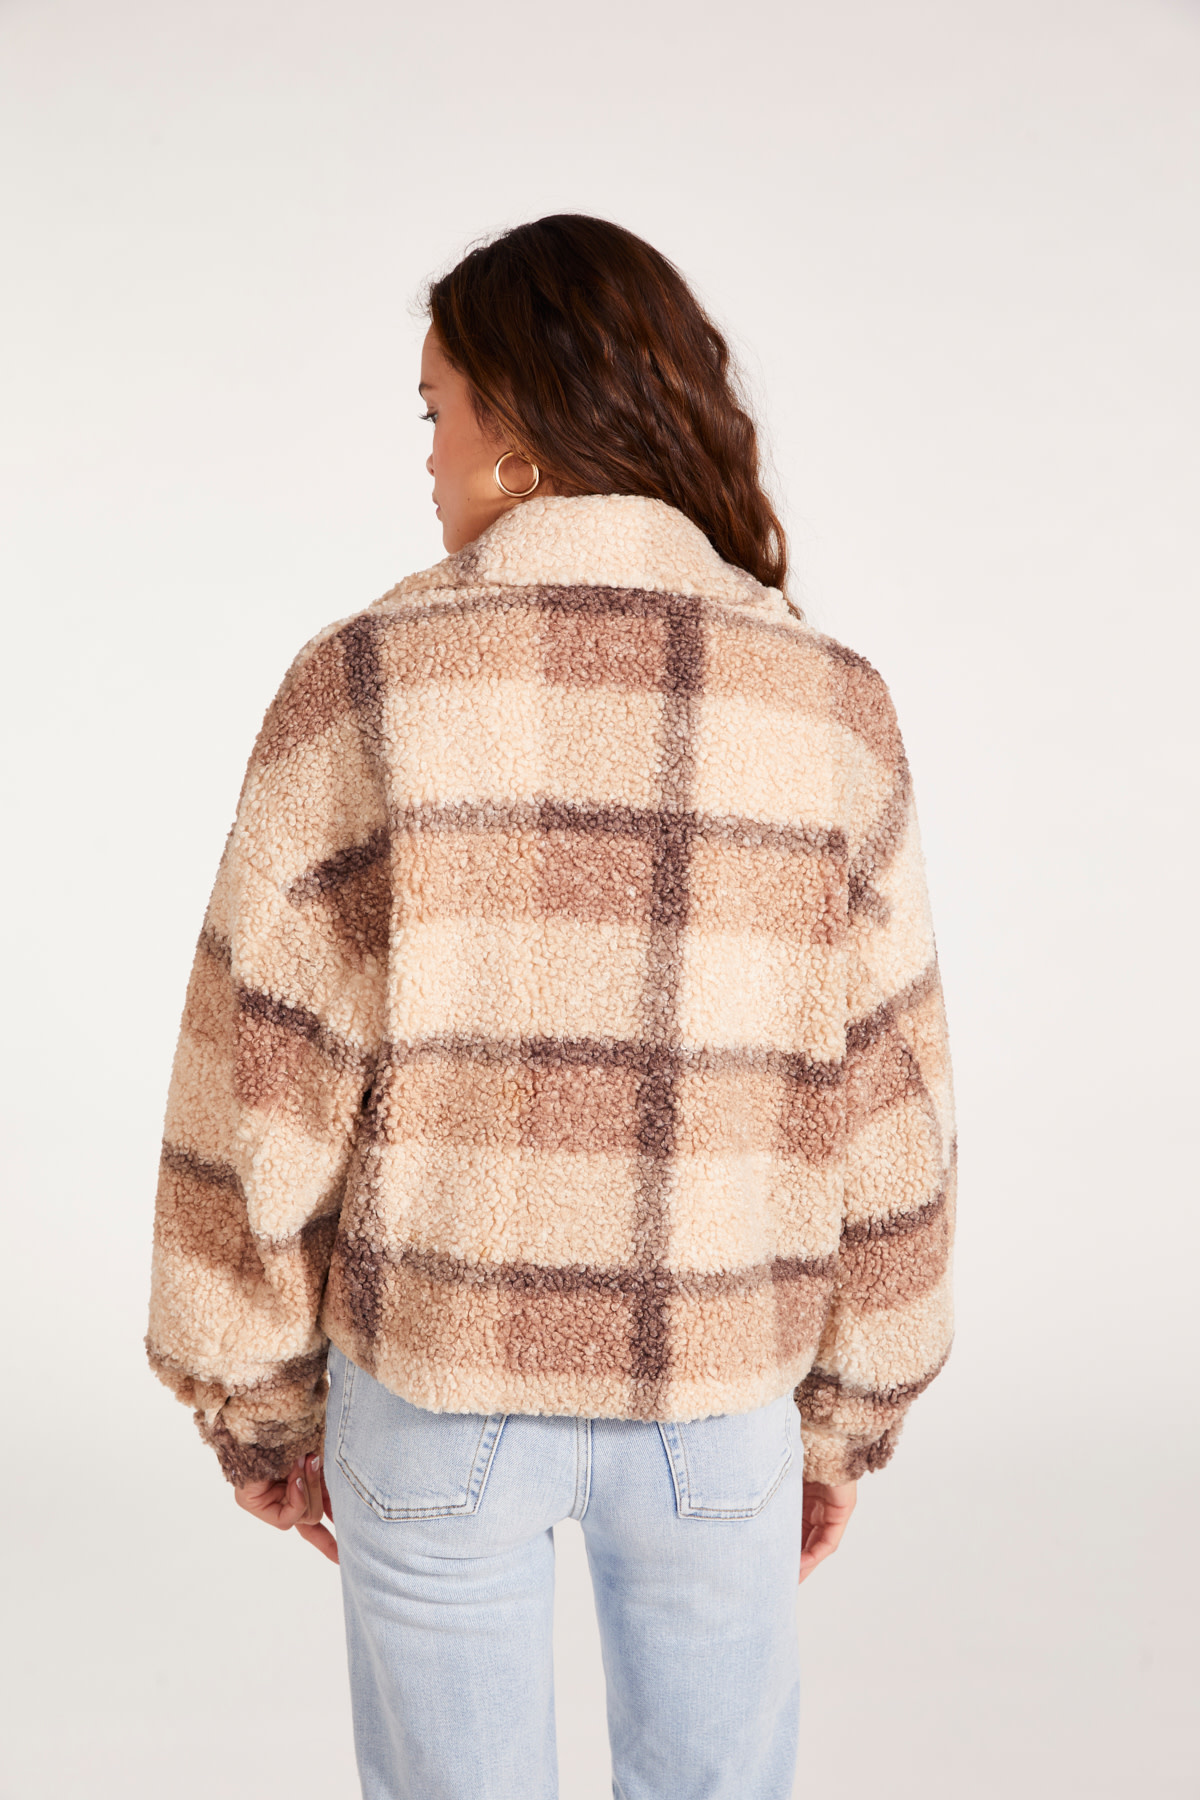 Plaid to See You Jacket